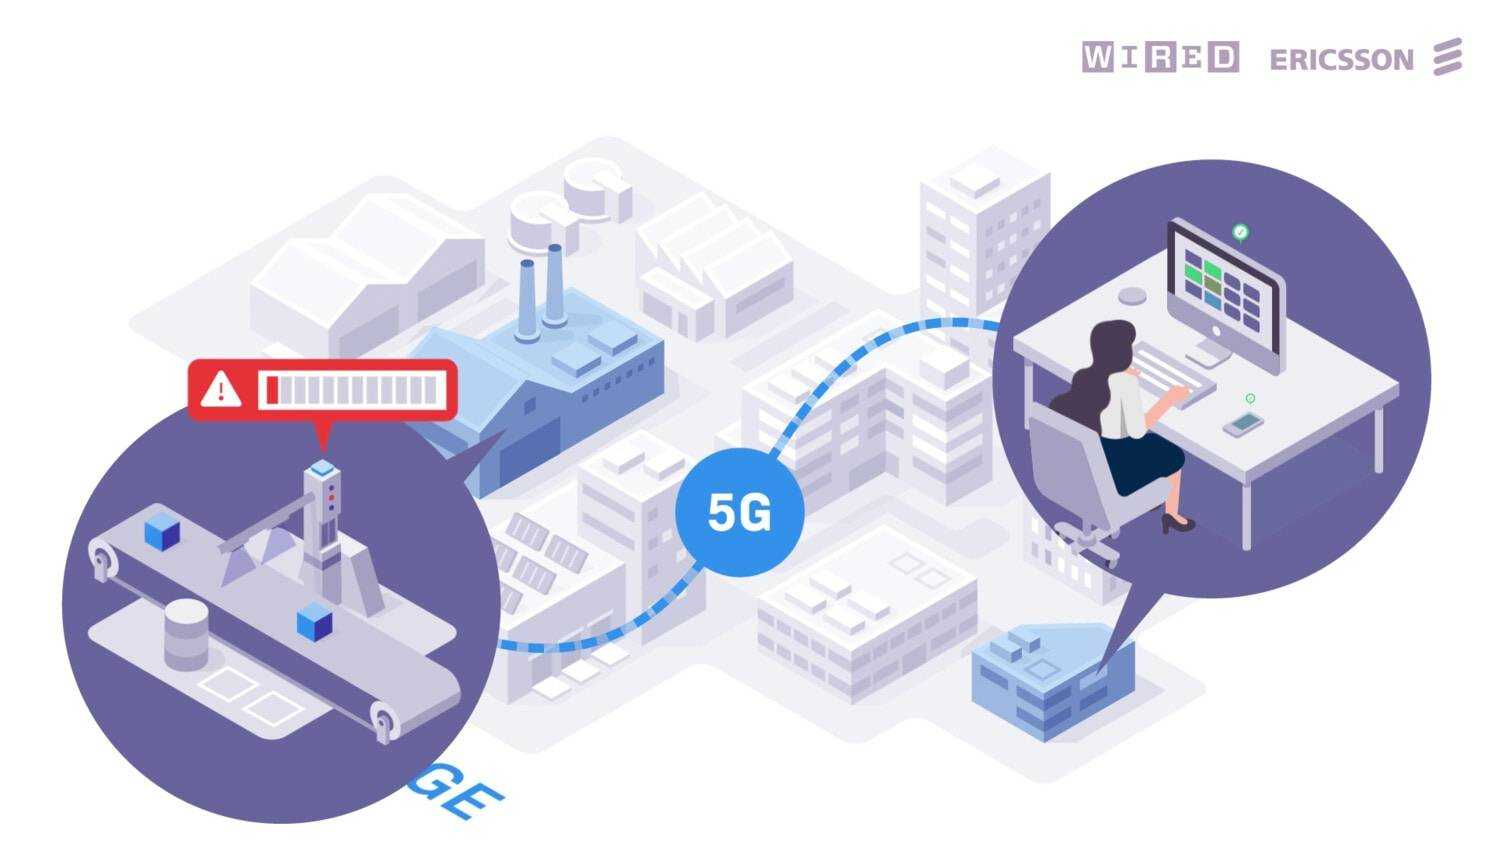 5G will allow factories to connect to the outside world and will allow facilities to automatically stay up to date with changing order models or logistical complications, for example via the cloud.